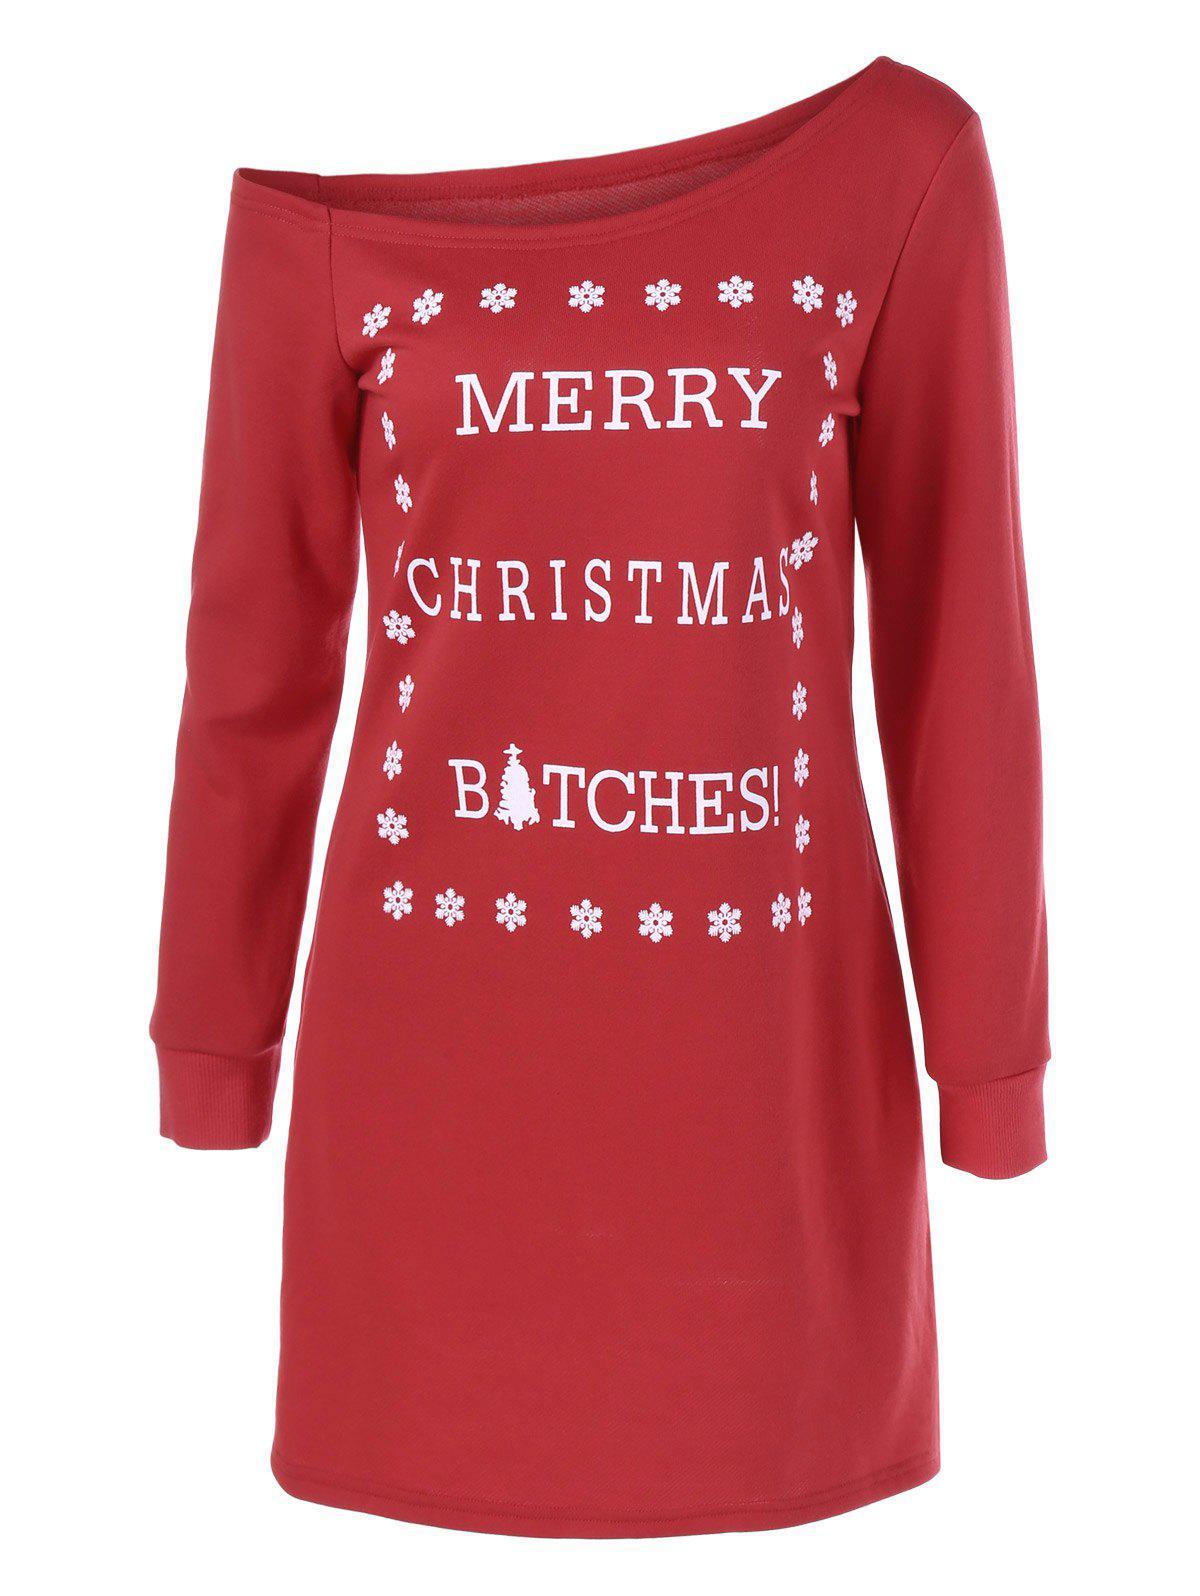 Christmas Snowflake Print Shift Tee DressWOMEN<br><br>Size: L; Color: RED; Style: Brief; Material: Polyester; Silhouette: Sheath; Dresses Length: Mini; Neckline: Skew Collar; Sleeve Length: Long Sleeves; Pattern Type: Letter; With Belt: No; Season: Fall,Spring; Weight: 0.420kg; Package Contents: 1 x Dress;